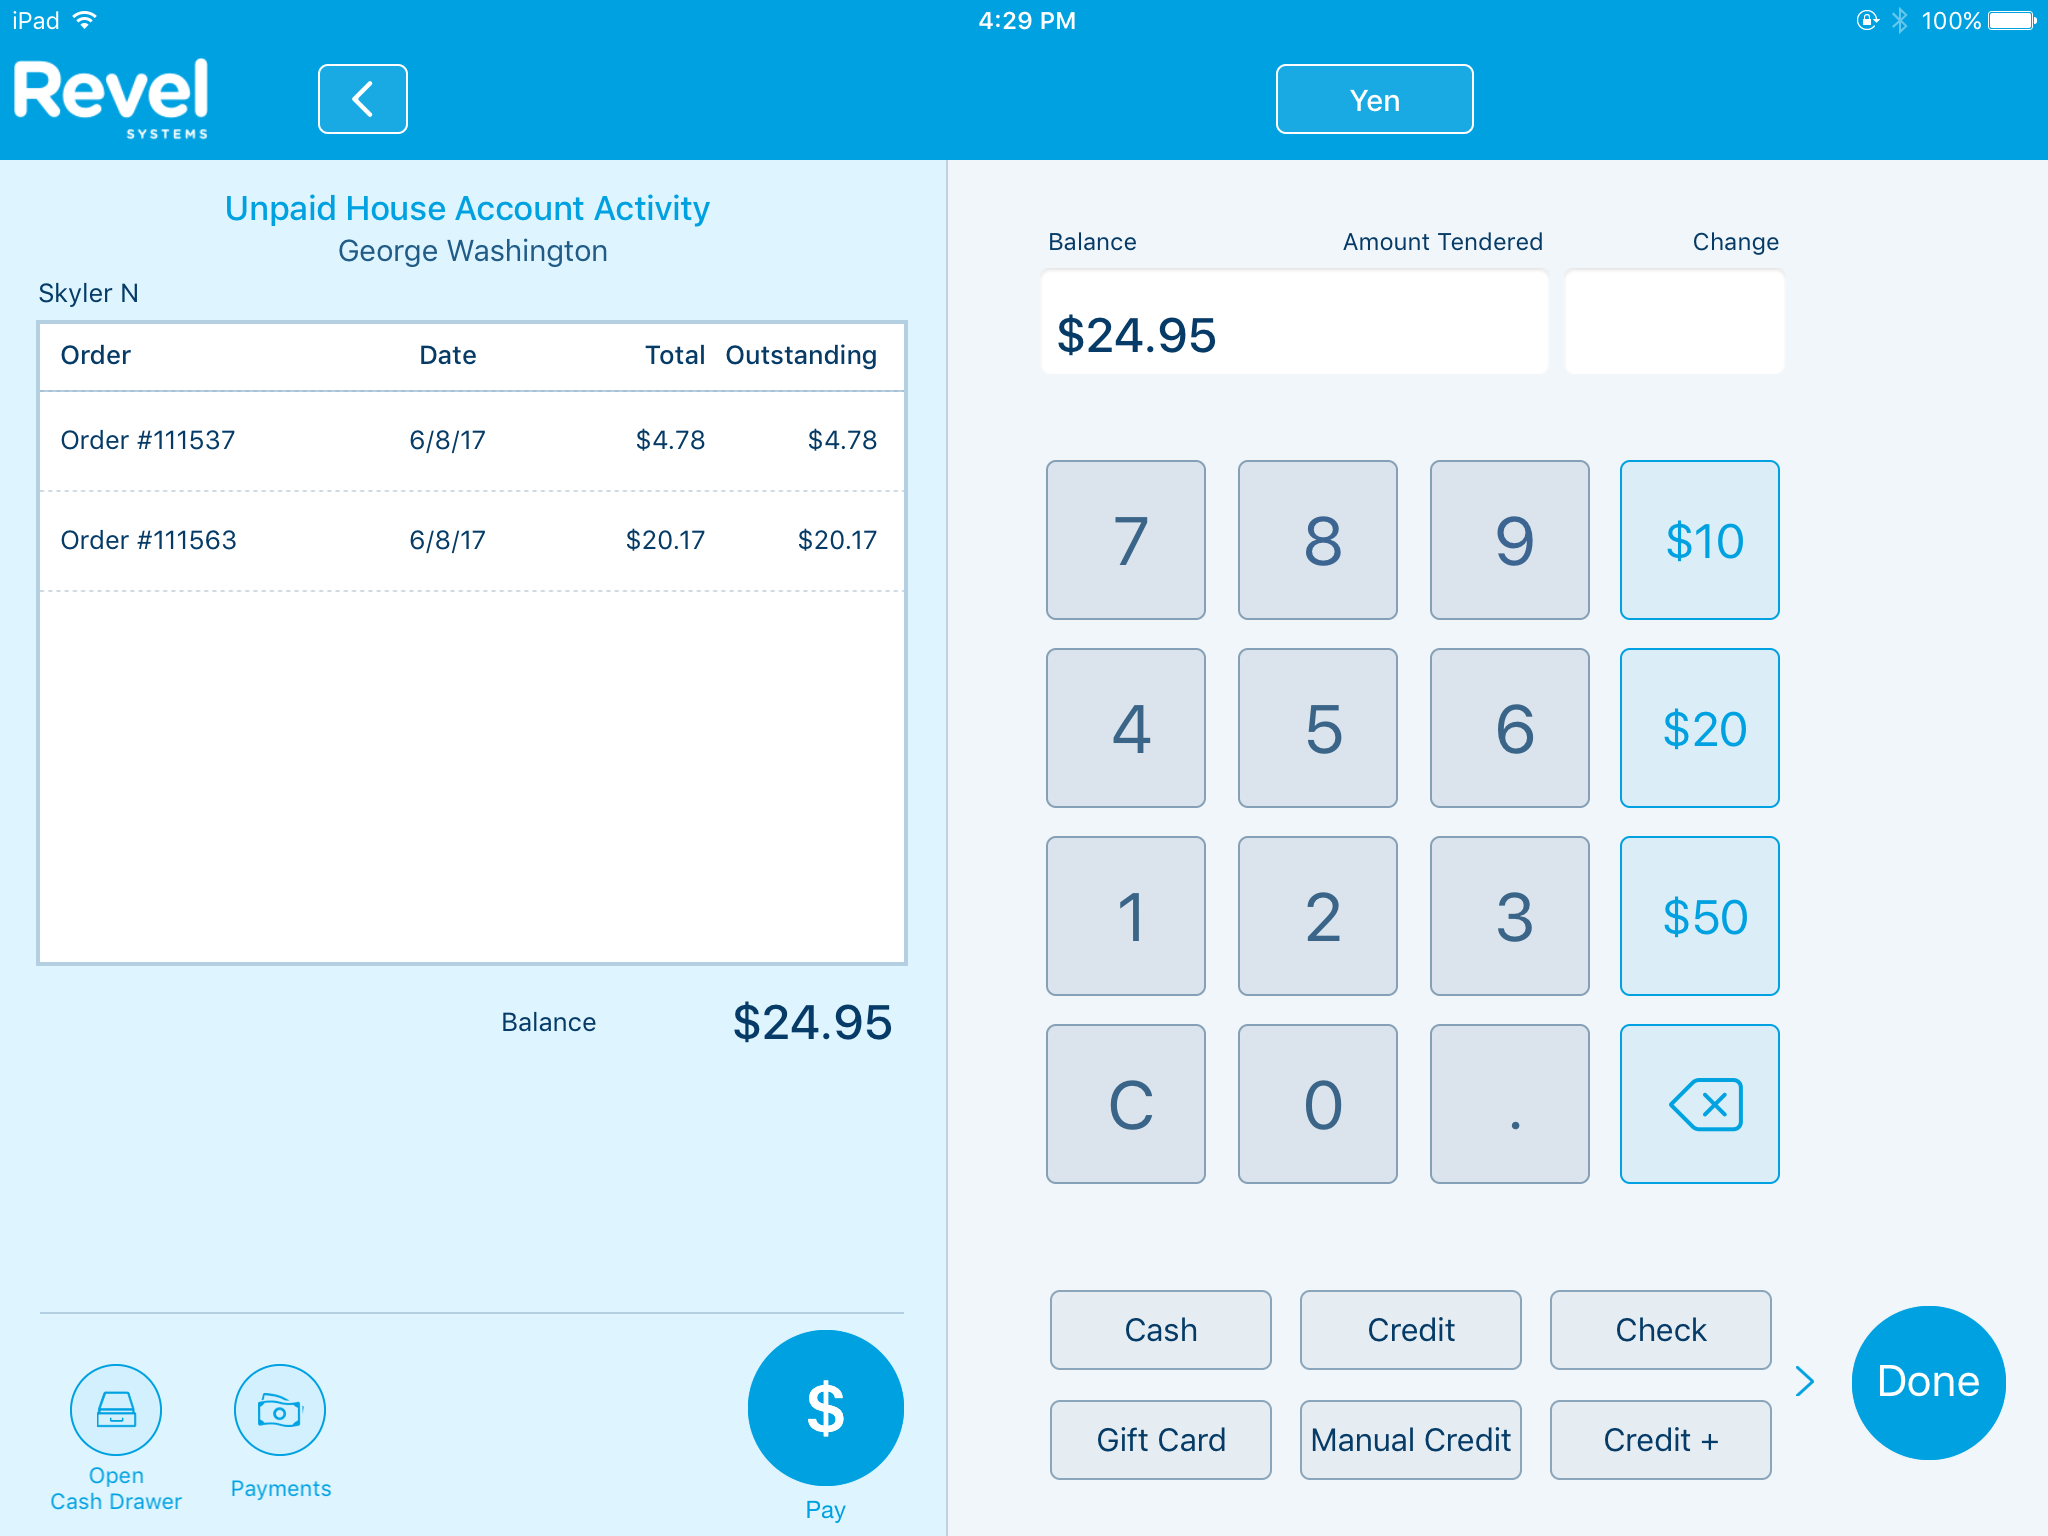 Us/customer/account/create - On The Left Side You Will See All Unpaid House Account Transactions As Well As A Total Balance